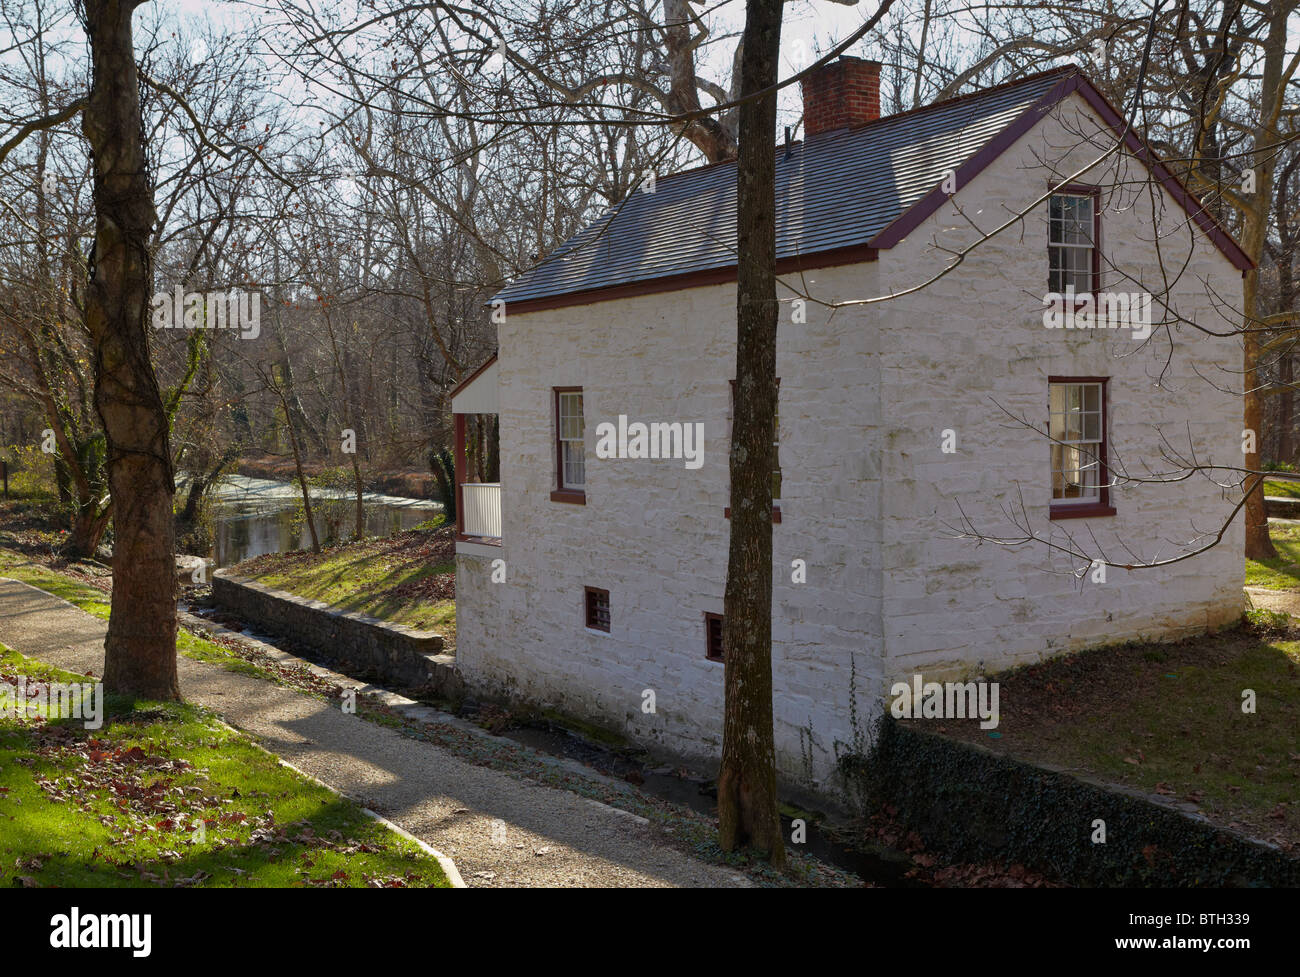 The rear exterior of Lockhouse 6 on the C&O Canal, Potomac, Maryland. - Stock Image